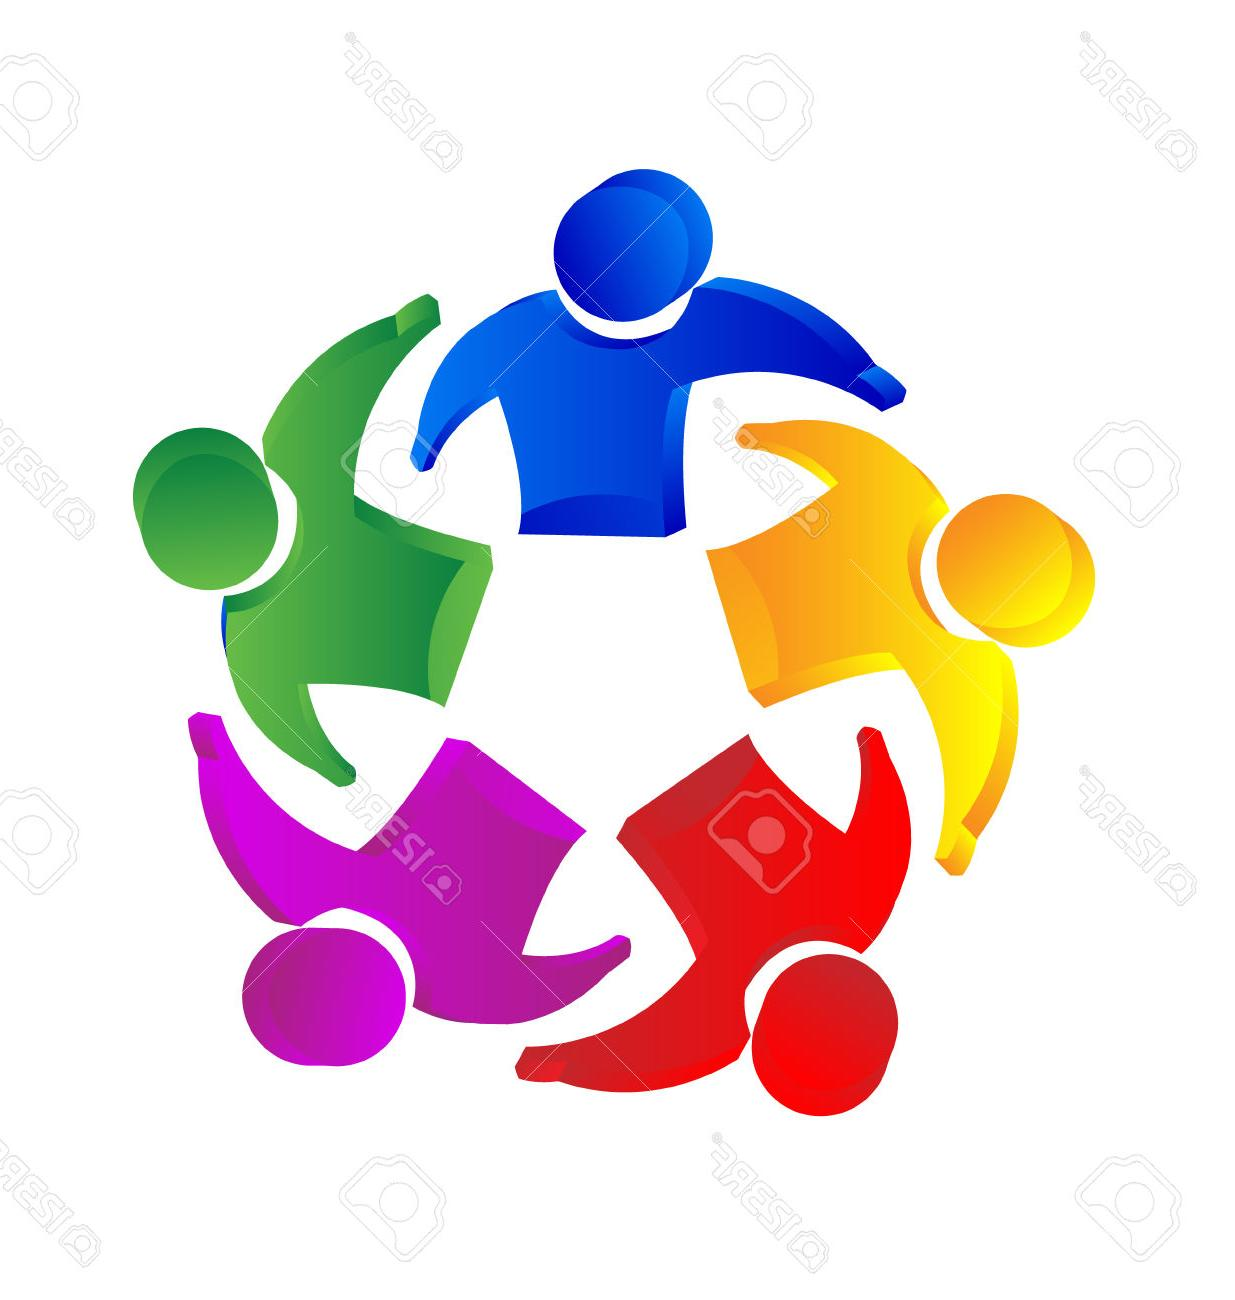 1235x1300 Best 15 Teamwork People Unity Concept Icon Vector Stock Family